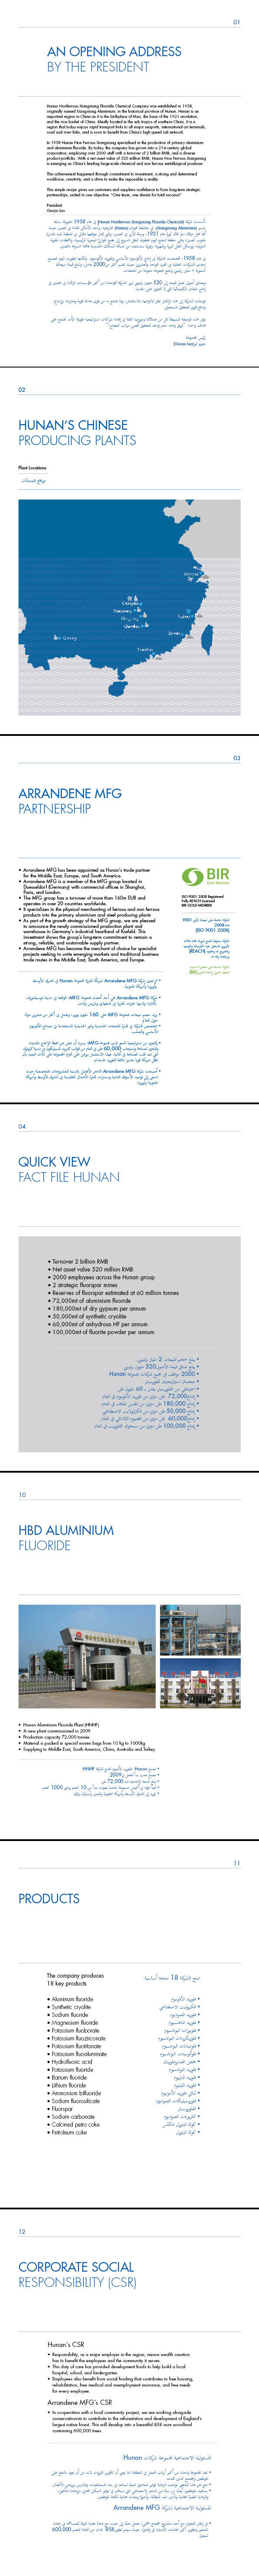 Arabic edition Hunan Brochure London, UK